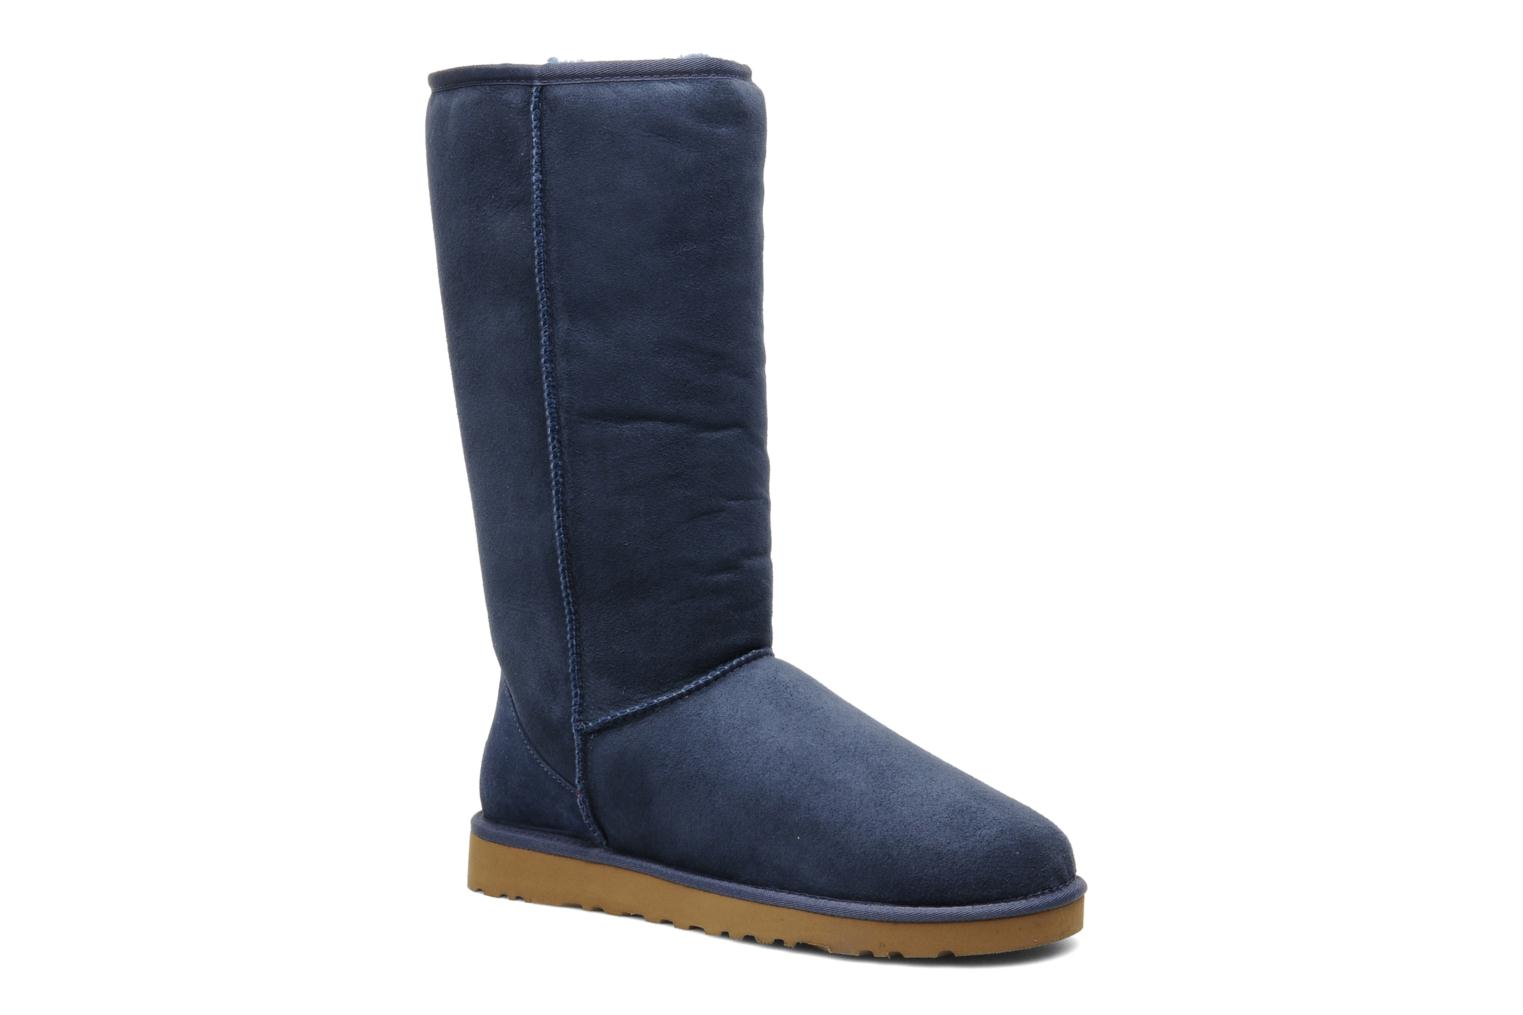 Classic tall by ugg australia.